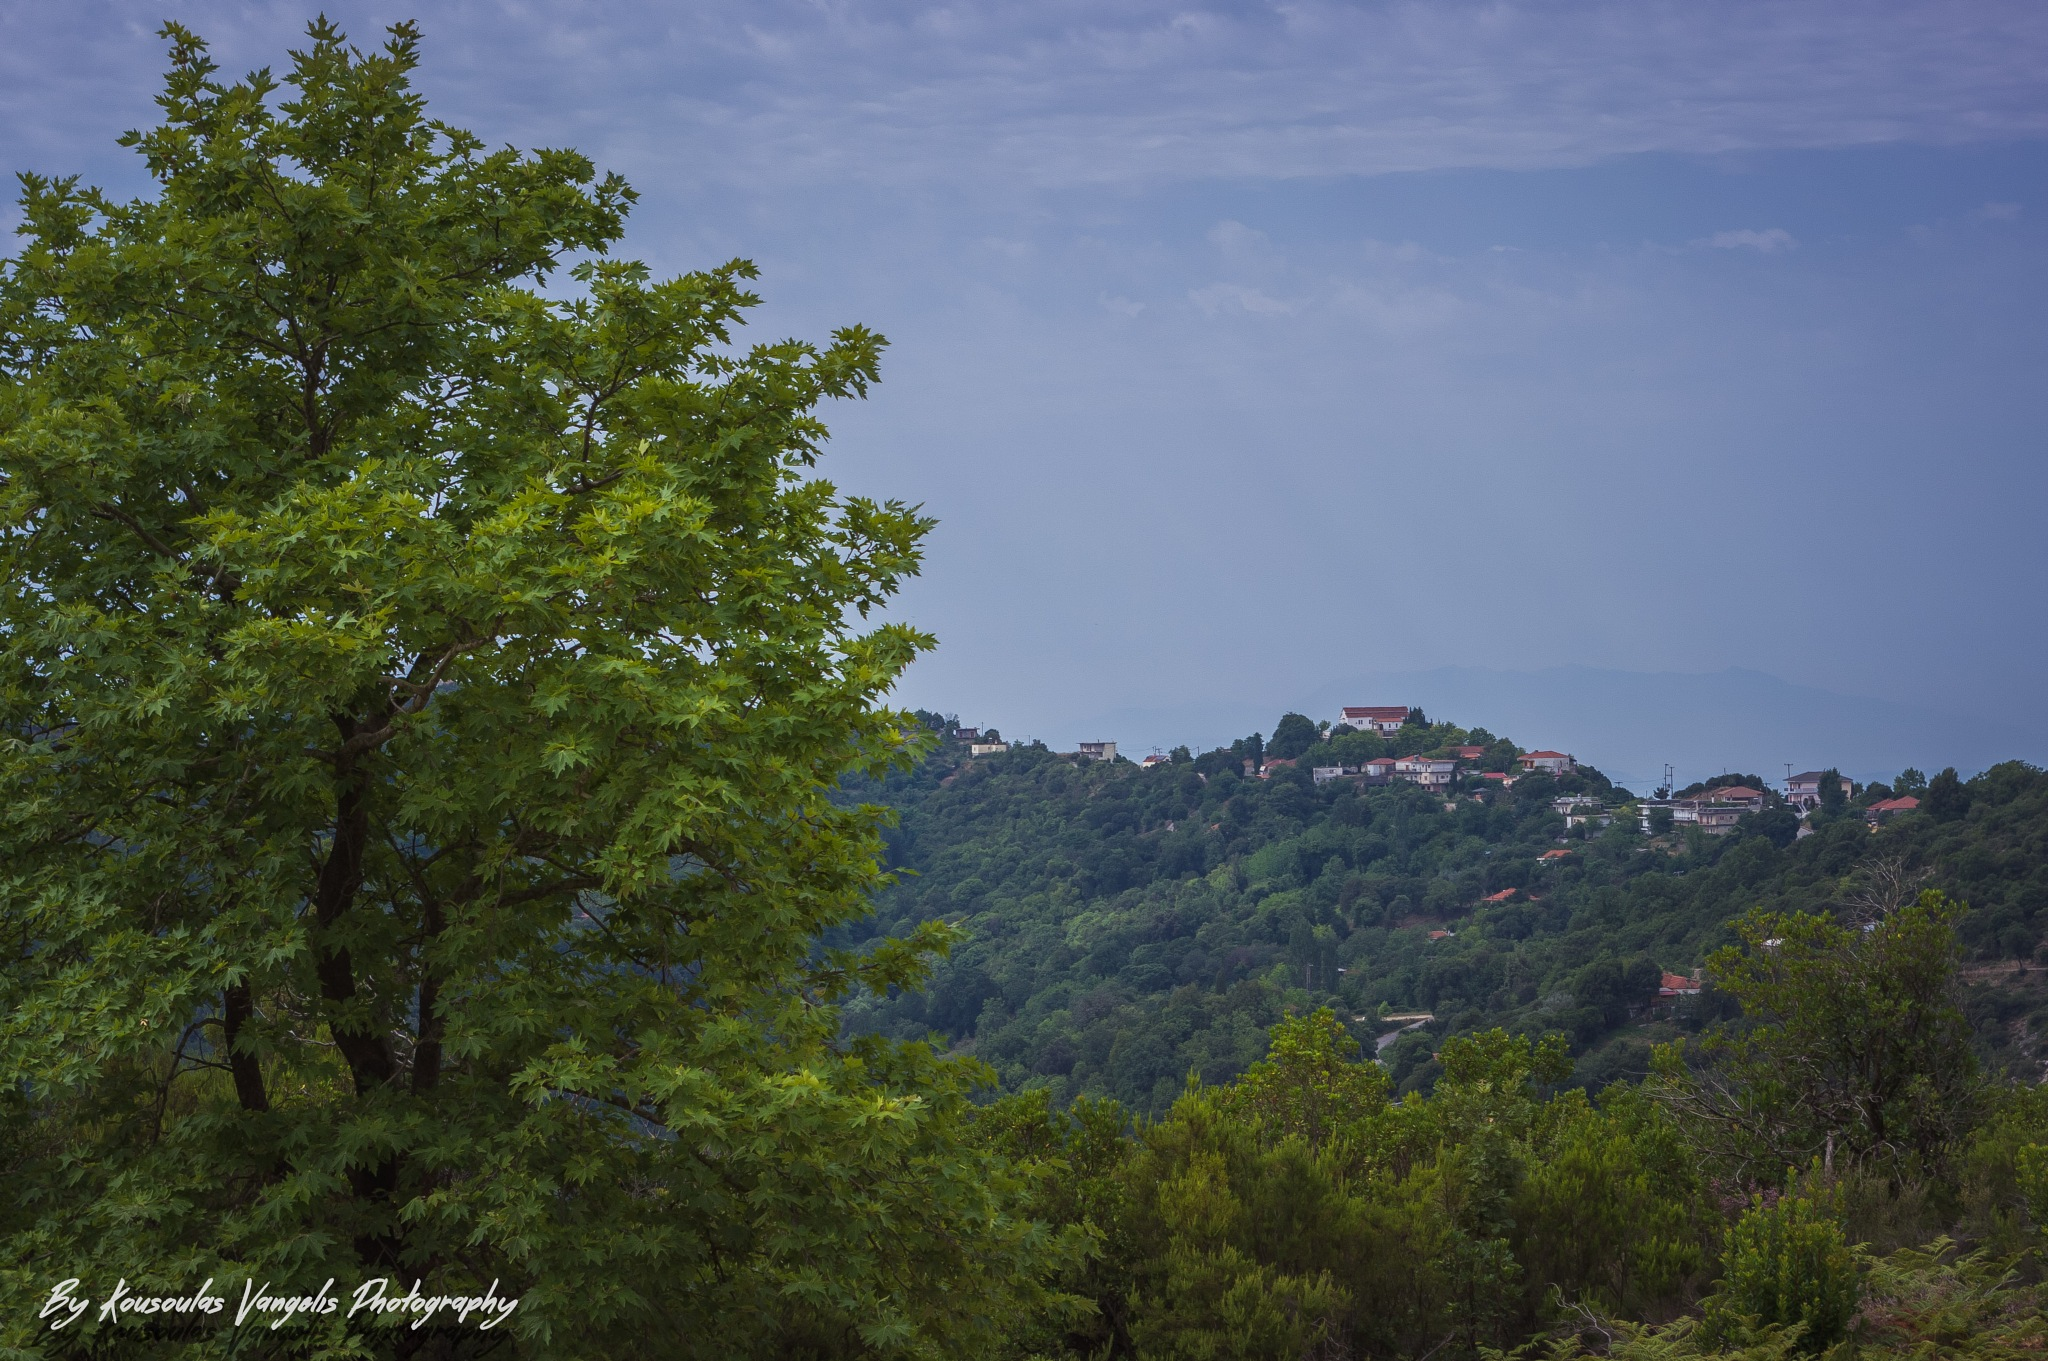 My village by kousoulas vangelis